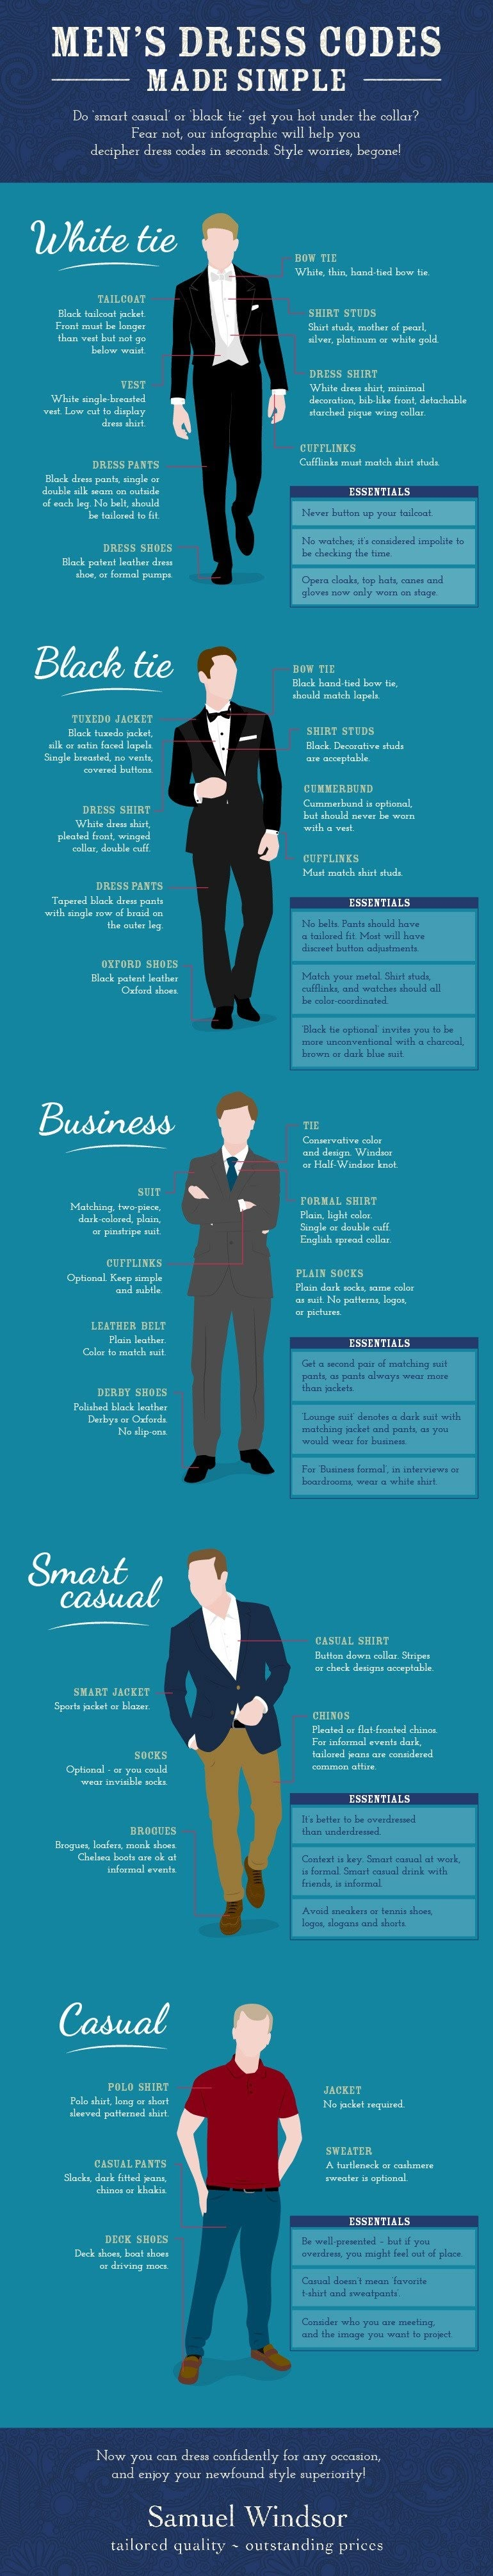 Men's dress codes Made Simple infographic